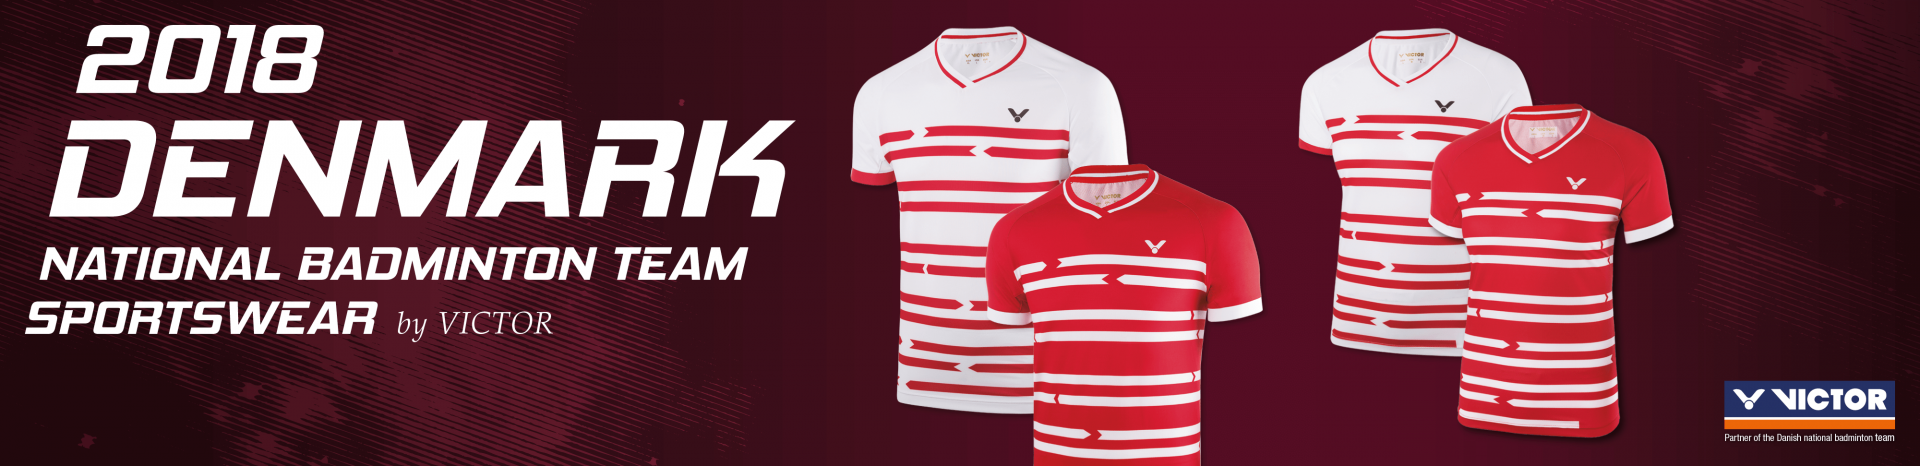 Denmark National Teamwear